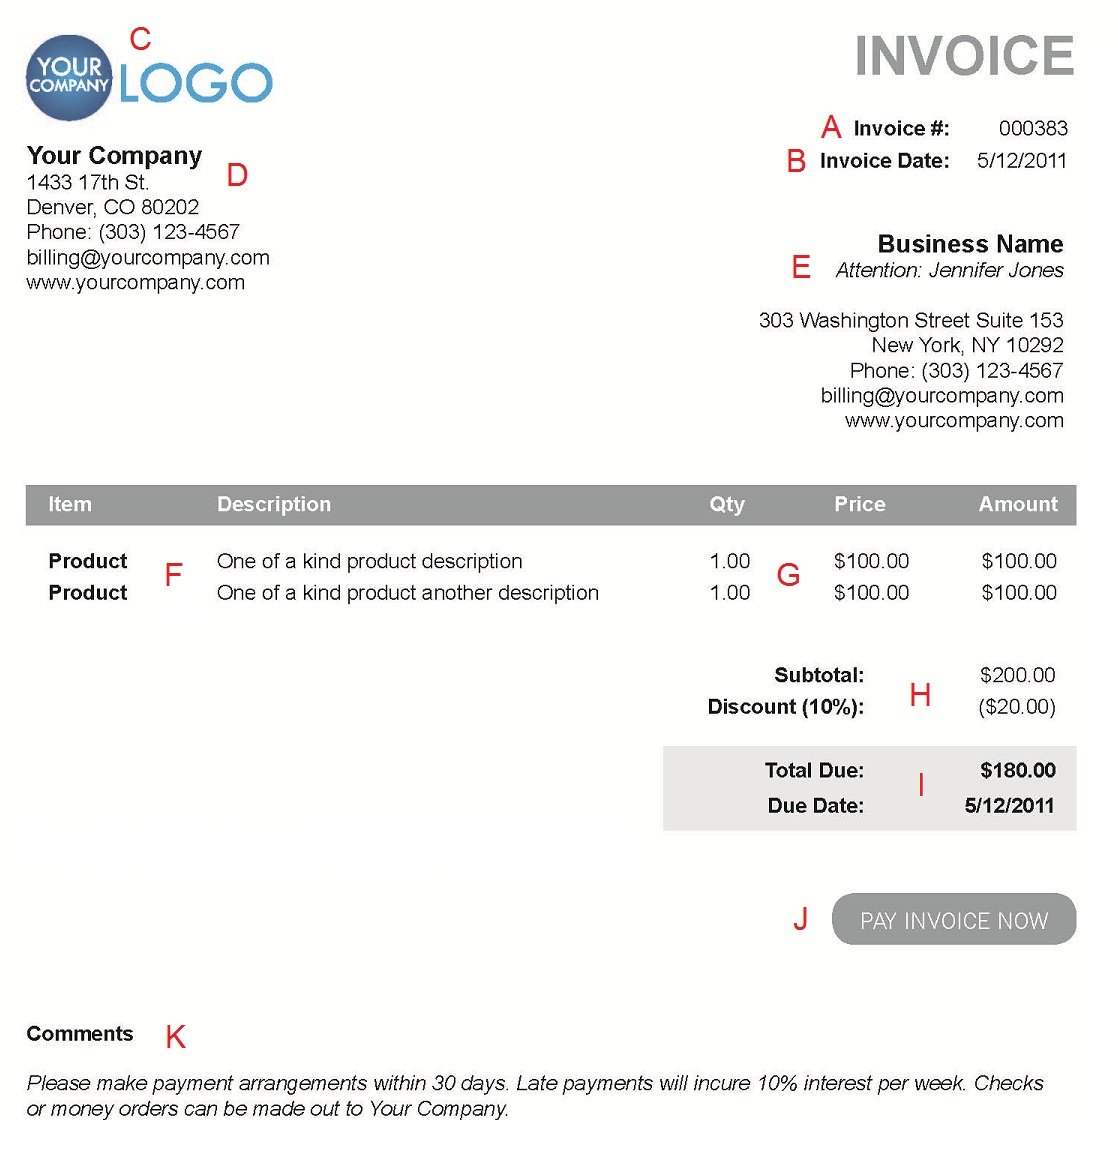 Floobydustus  Pleasant The  Different Sections Of An Electronic Payment Invoice With Handsome A  With Awesome Invoice Loans Also Best Free Invoicing Software In Addition Invoices And Estimates Pro And Invoices Templates Free As Well As Donation Invoice Template Additionally Landscape Invoice Template From Paysimplecom With Floobydustus  Handsome The  Different Sections Of An Electronic Payment Invoice With Awesome A  And Pleasant Invoice Loans Also Best Free Invoicing Software In Addition Invoices And Estimates Pro From Paysimplecom